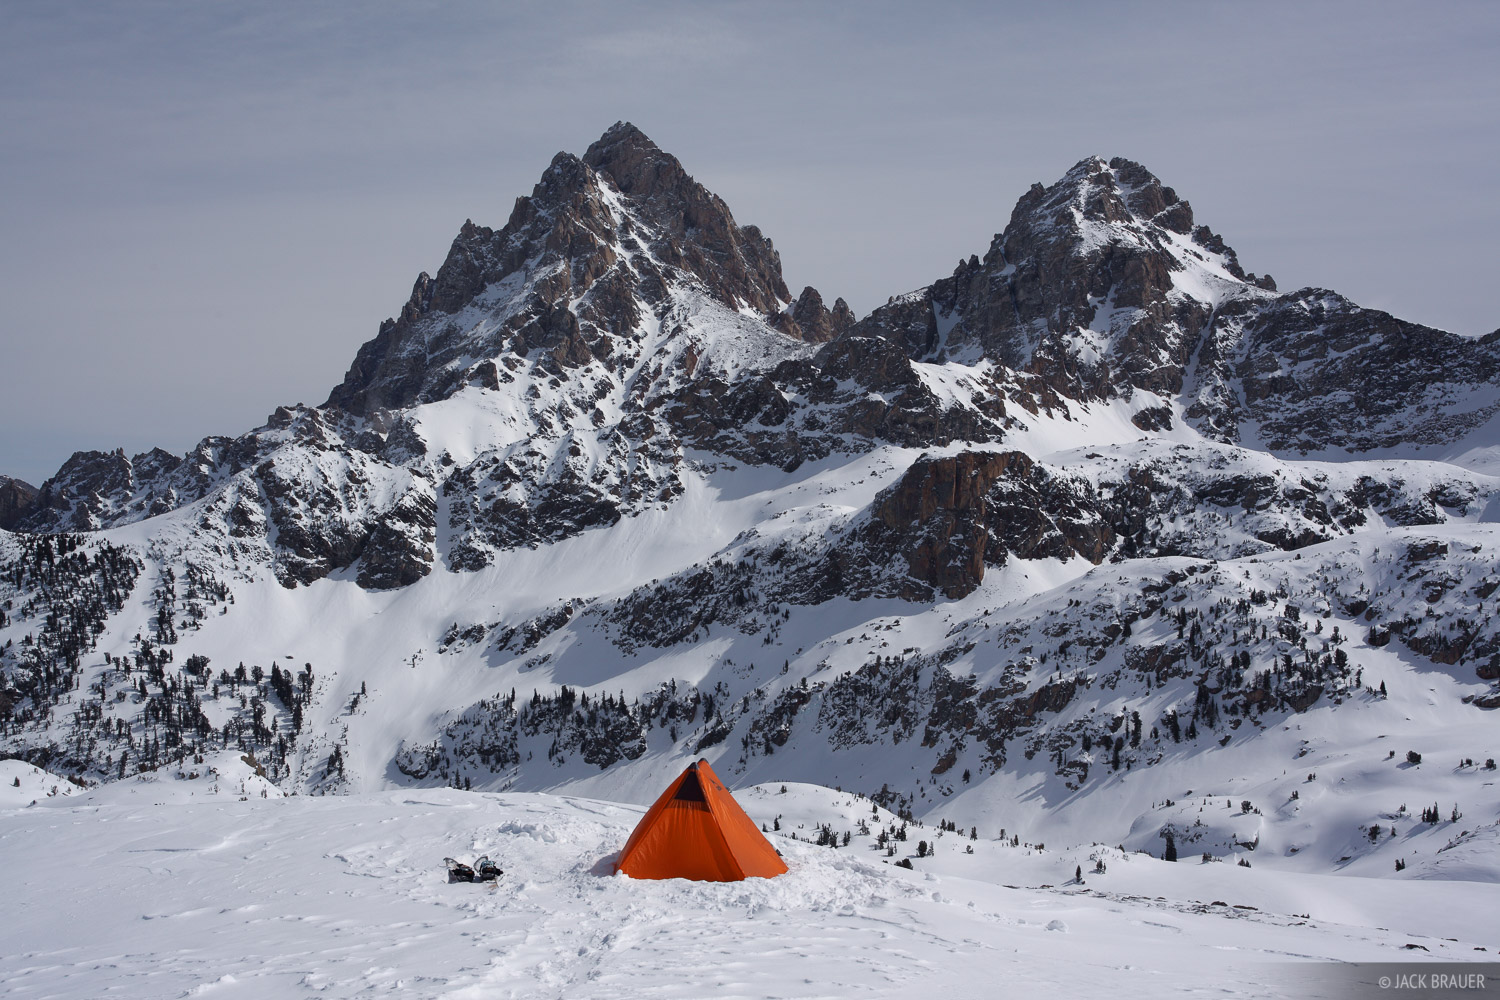 tent, Grand Teton, Middle Teton, Tetons, Wyoming, Hurricane Pass, Grand Teton National Park, photo